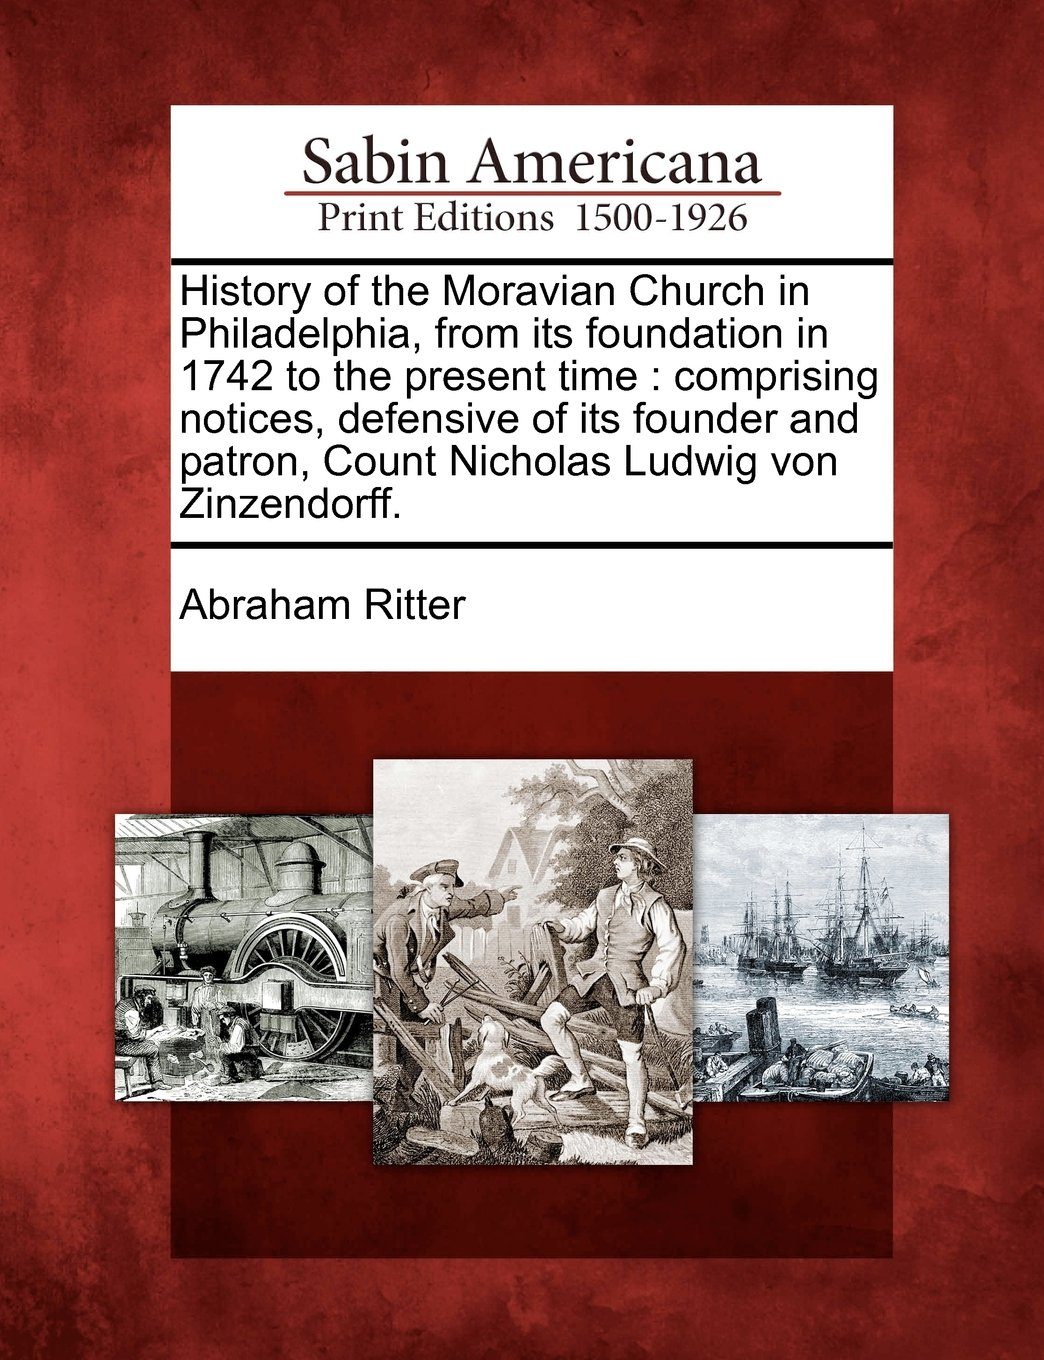 History of the Moravian Church in Philadelphia, from its foundation in 1742 to the present time: comprising notices, defensive of its founder and patron, Count Nicholas Ludwig von Zinzendorff. pdf epub